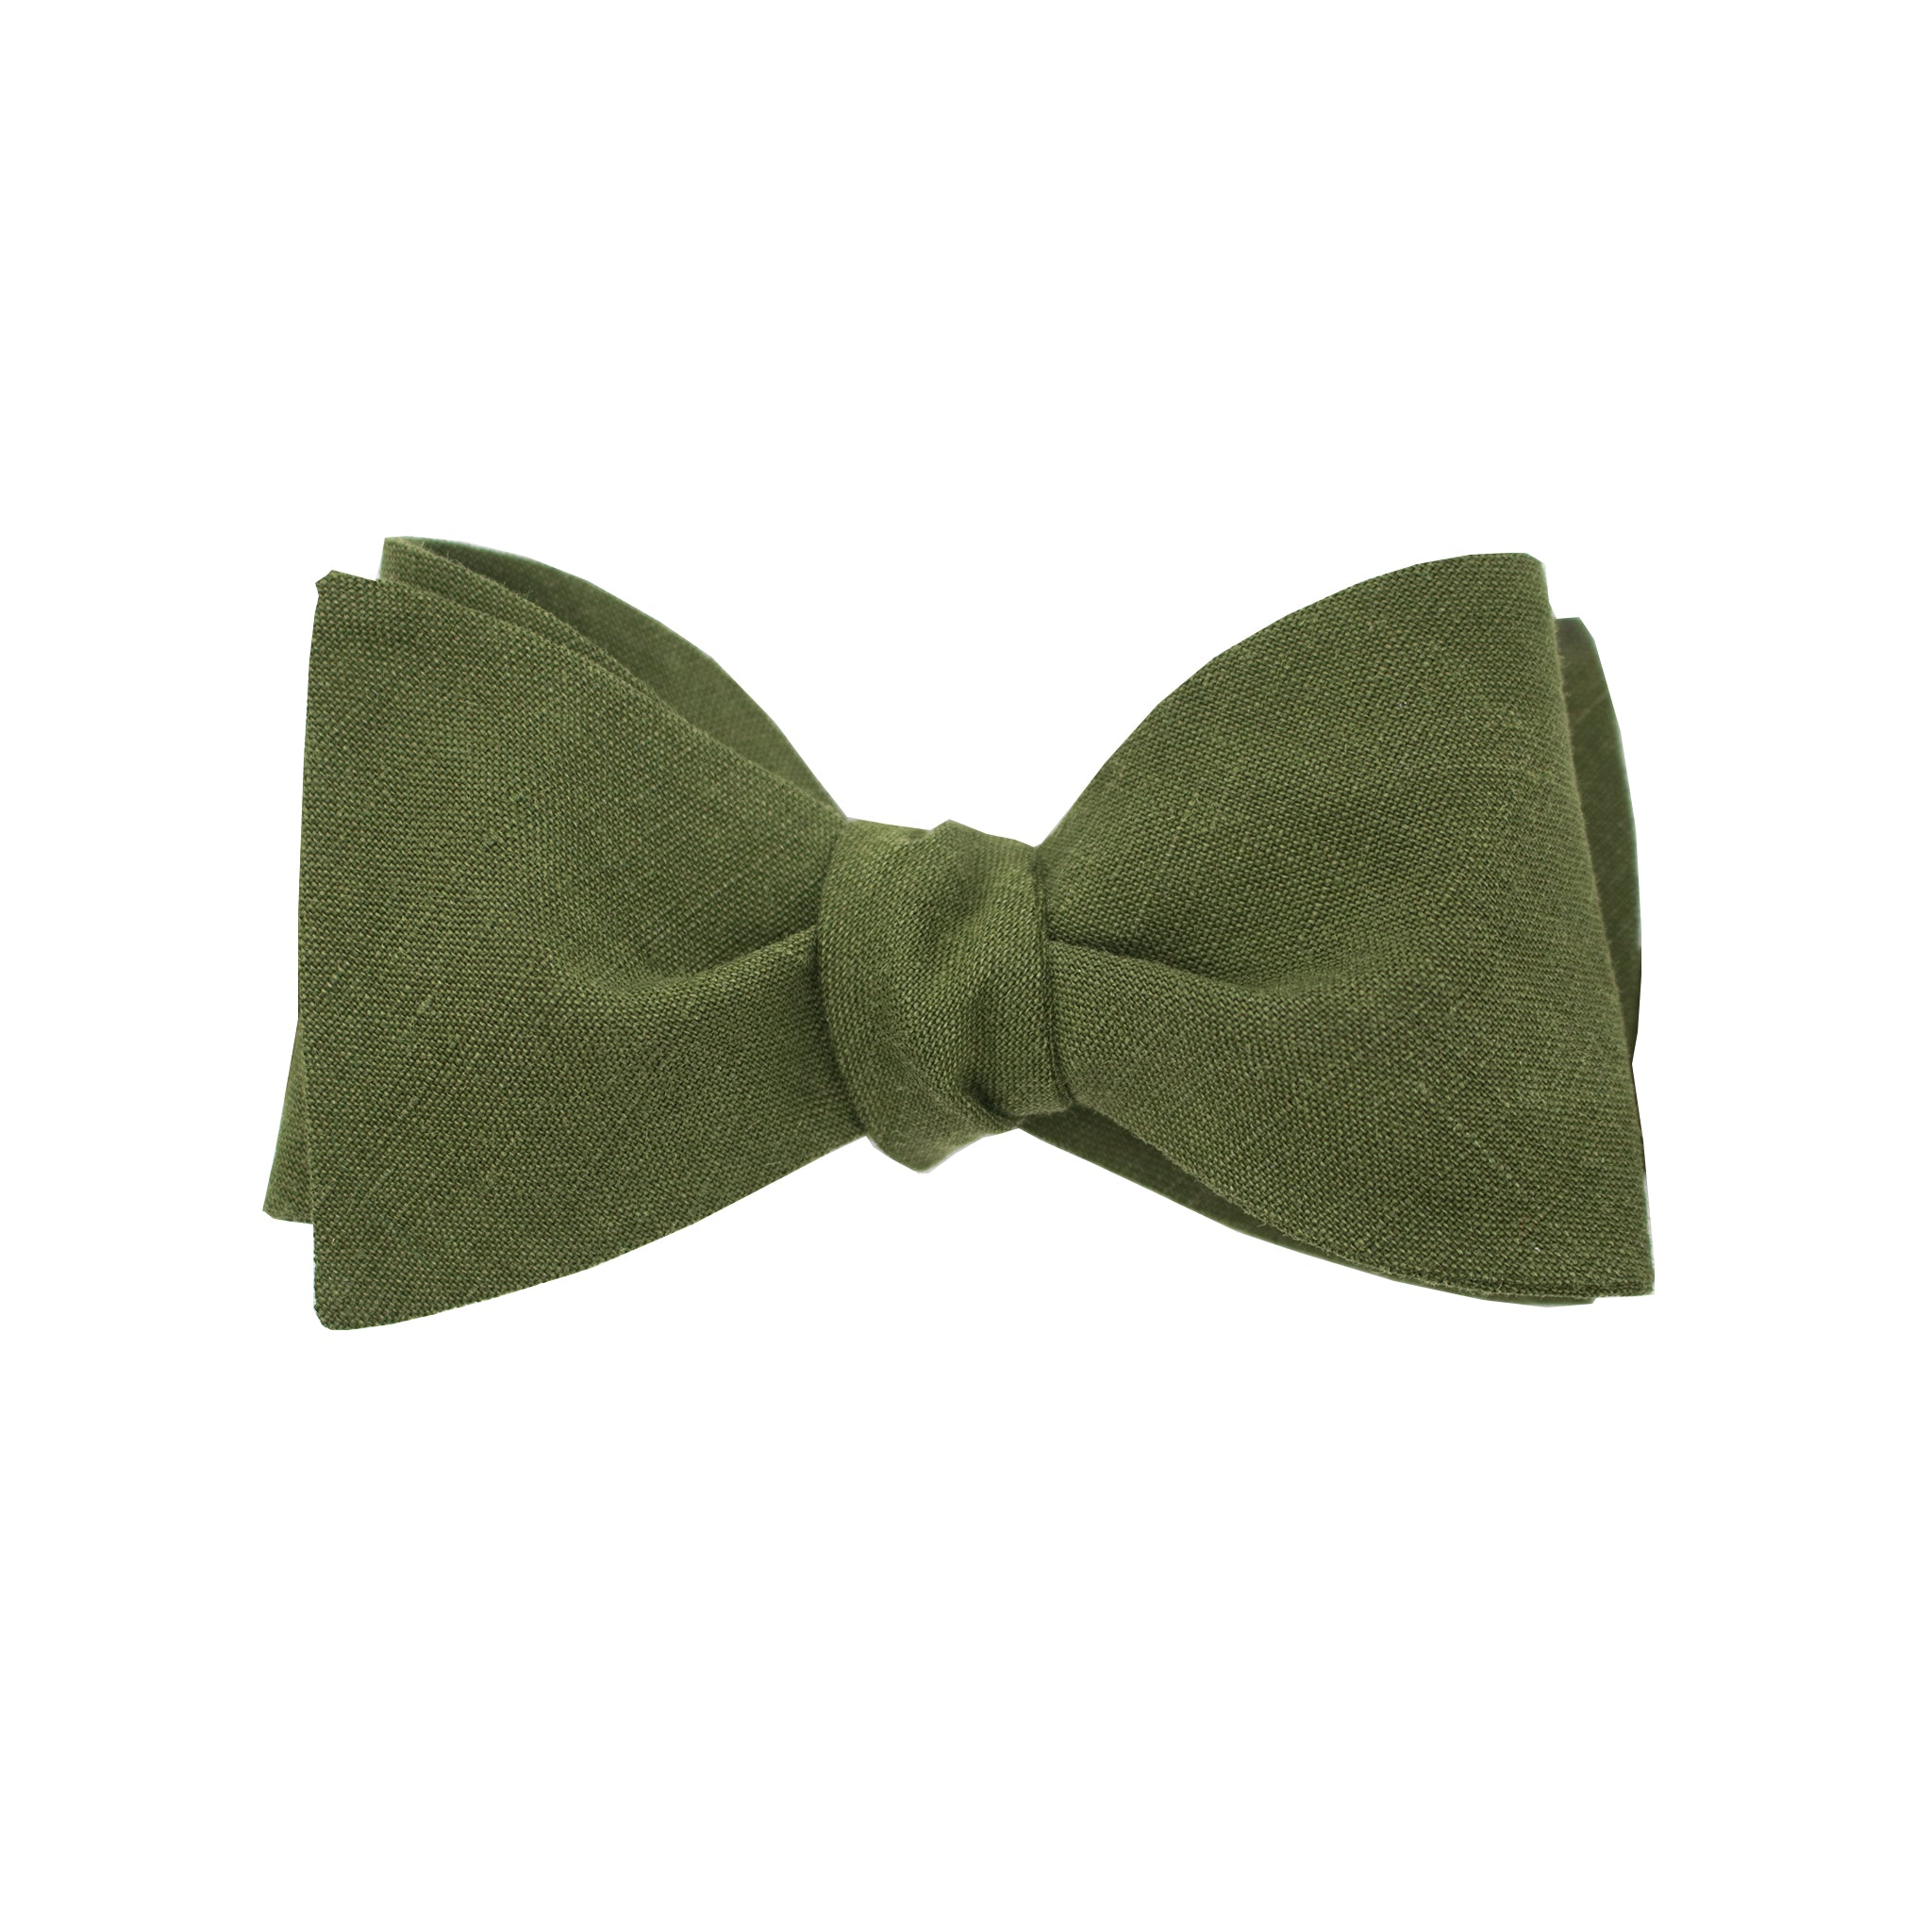 Mountain View Self Tie Bow Tie